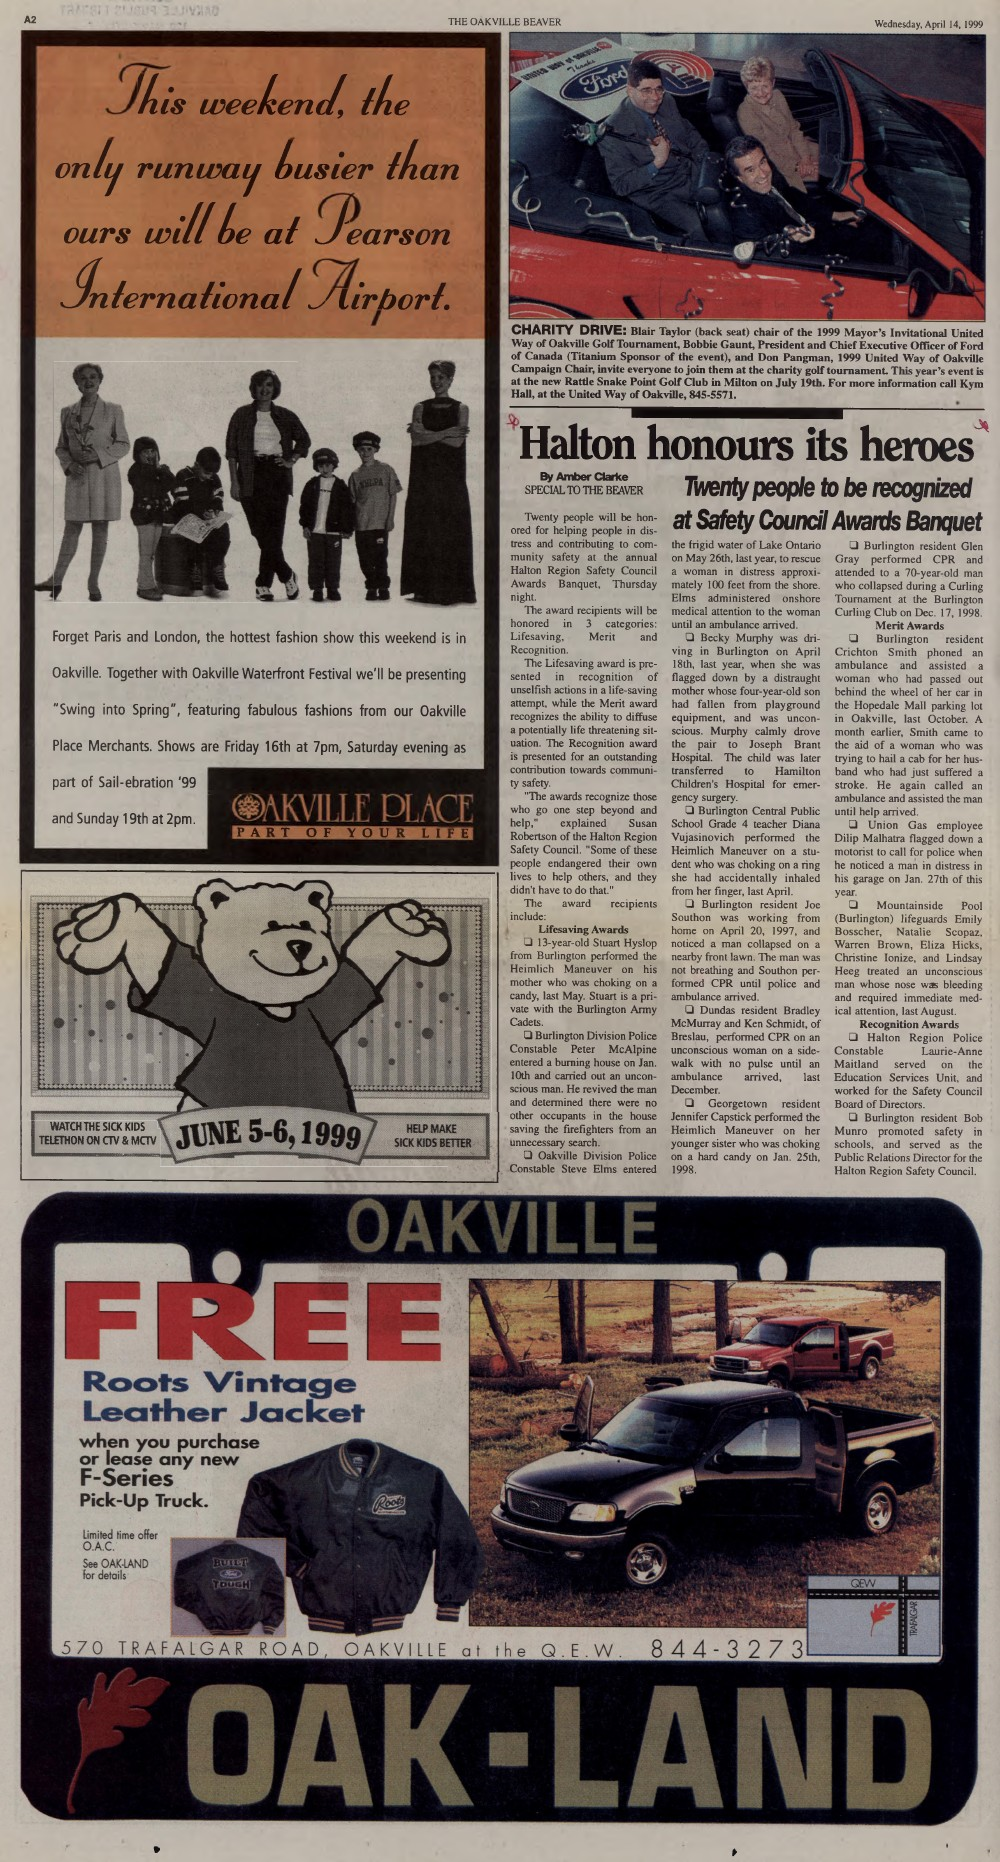 Oakville Beaver, 14 Apr 1999